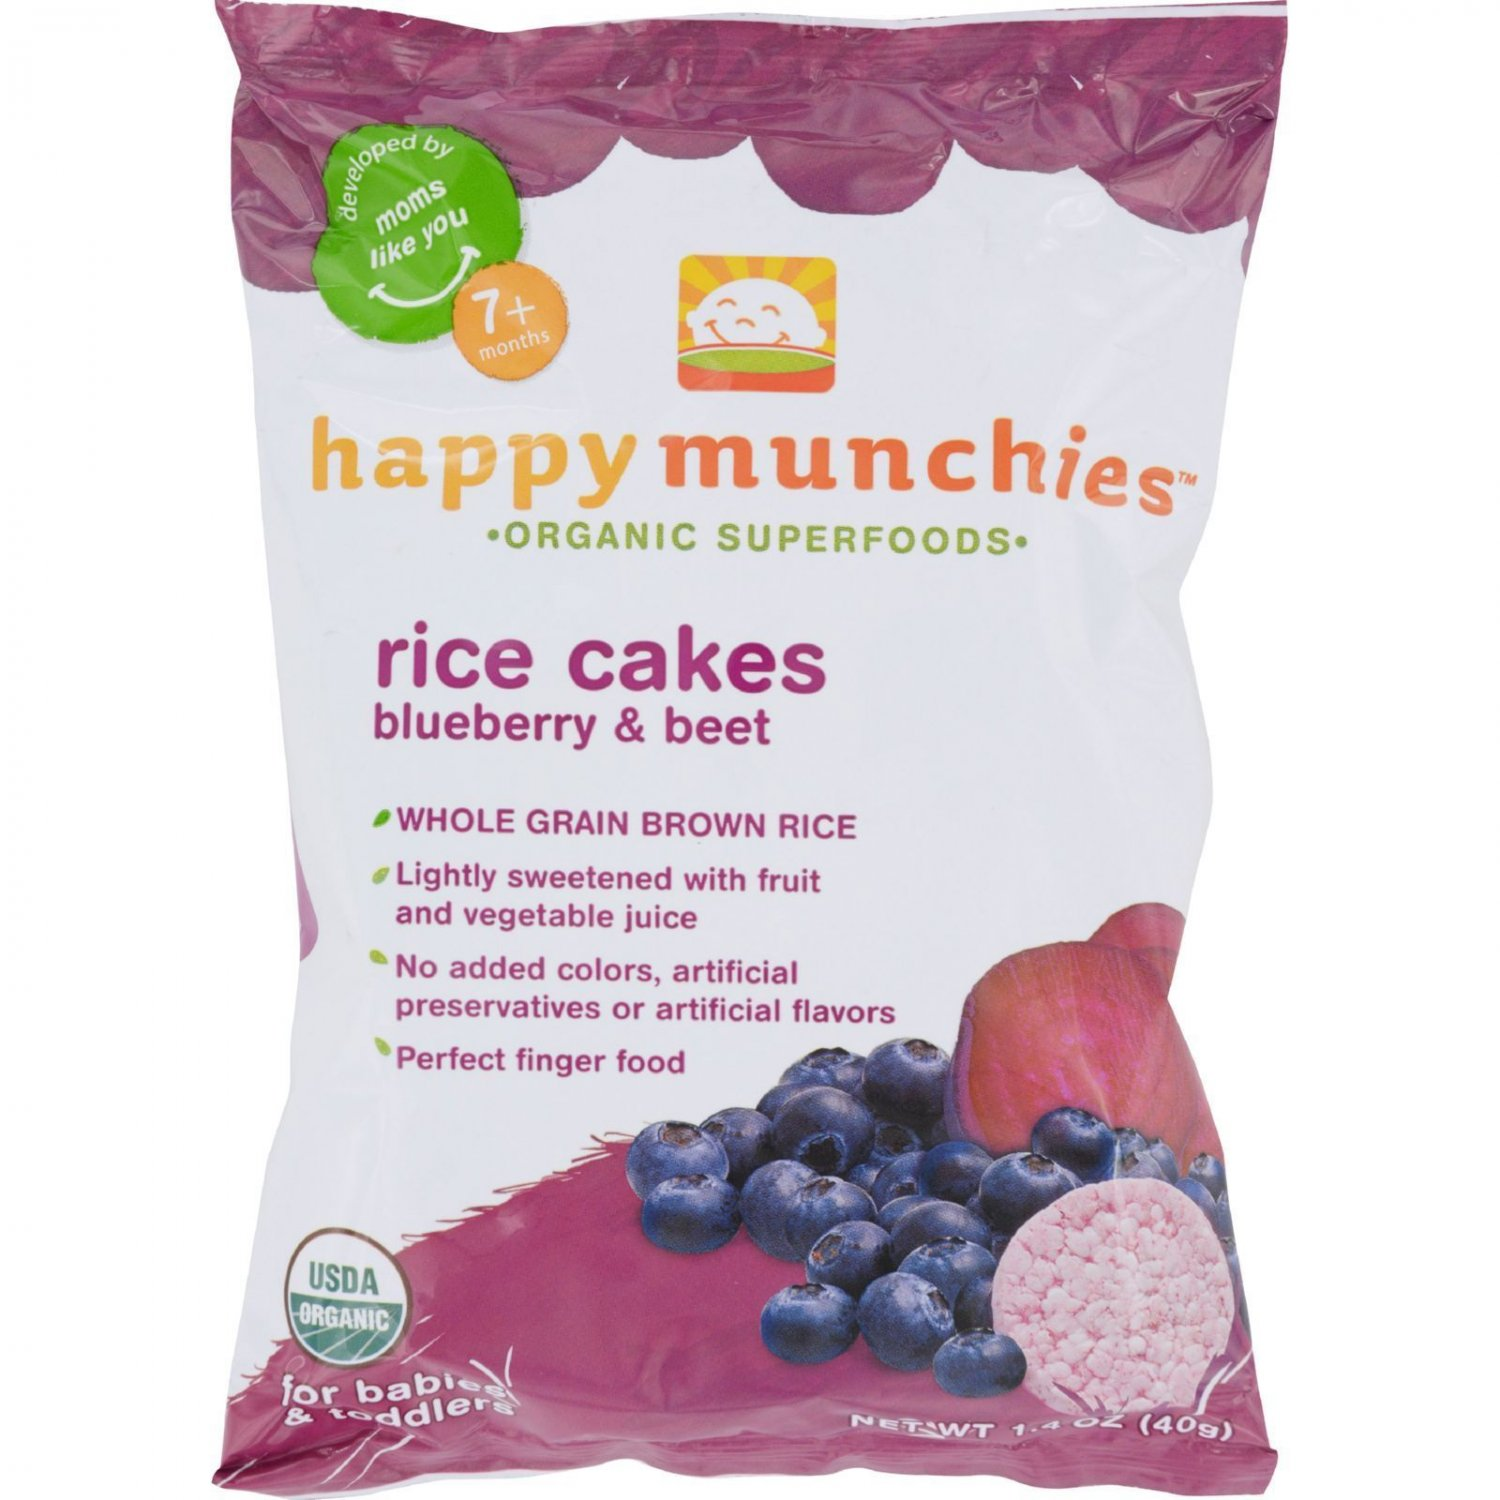 Happy Munchies Rice Cakes - Organic Blueberry and Beet - 1.4 oz - Case of 10